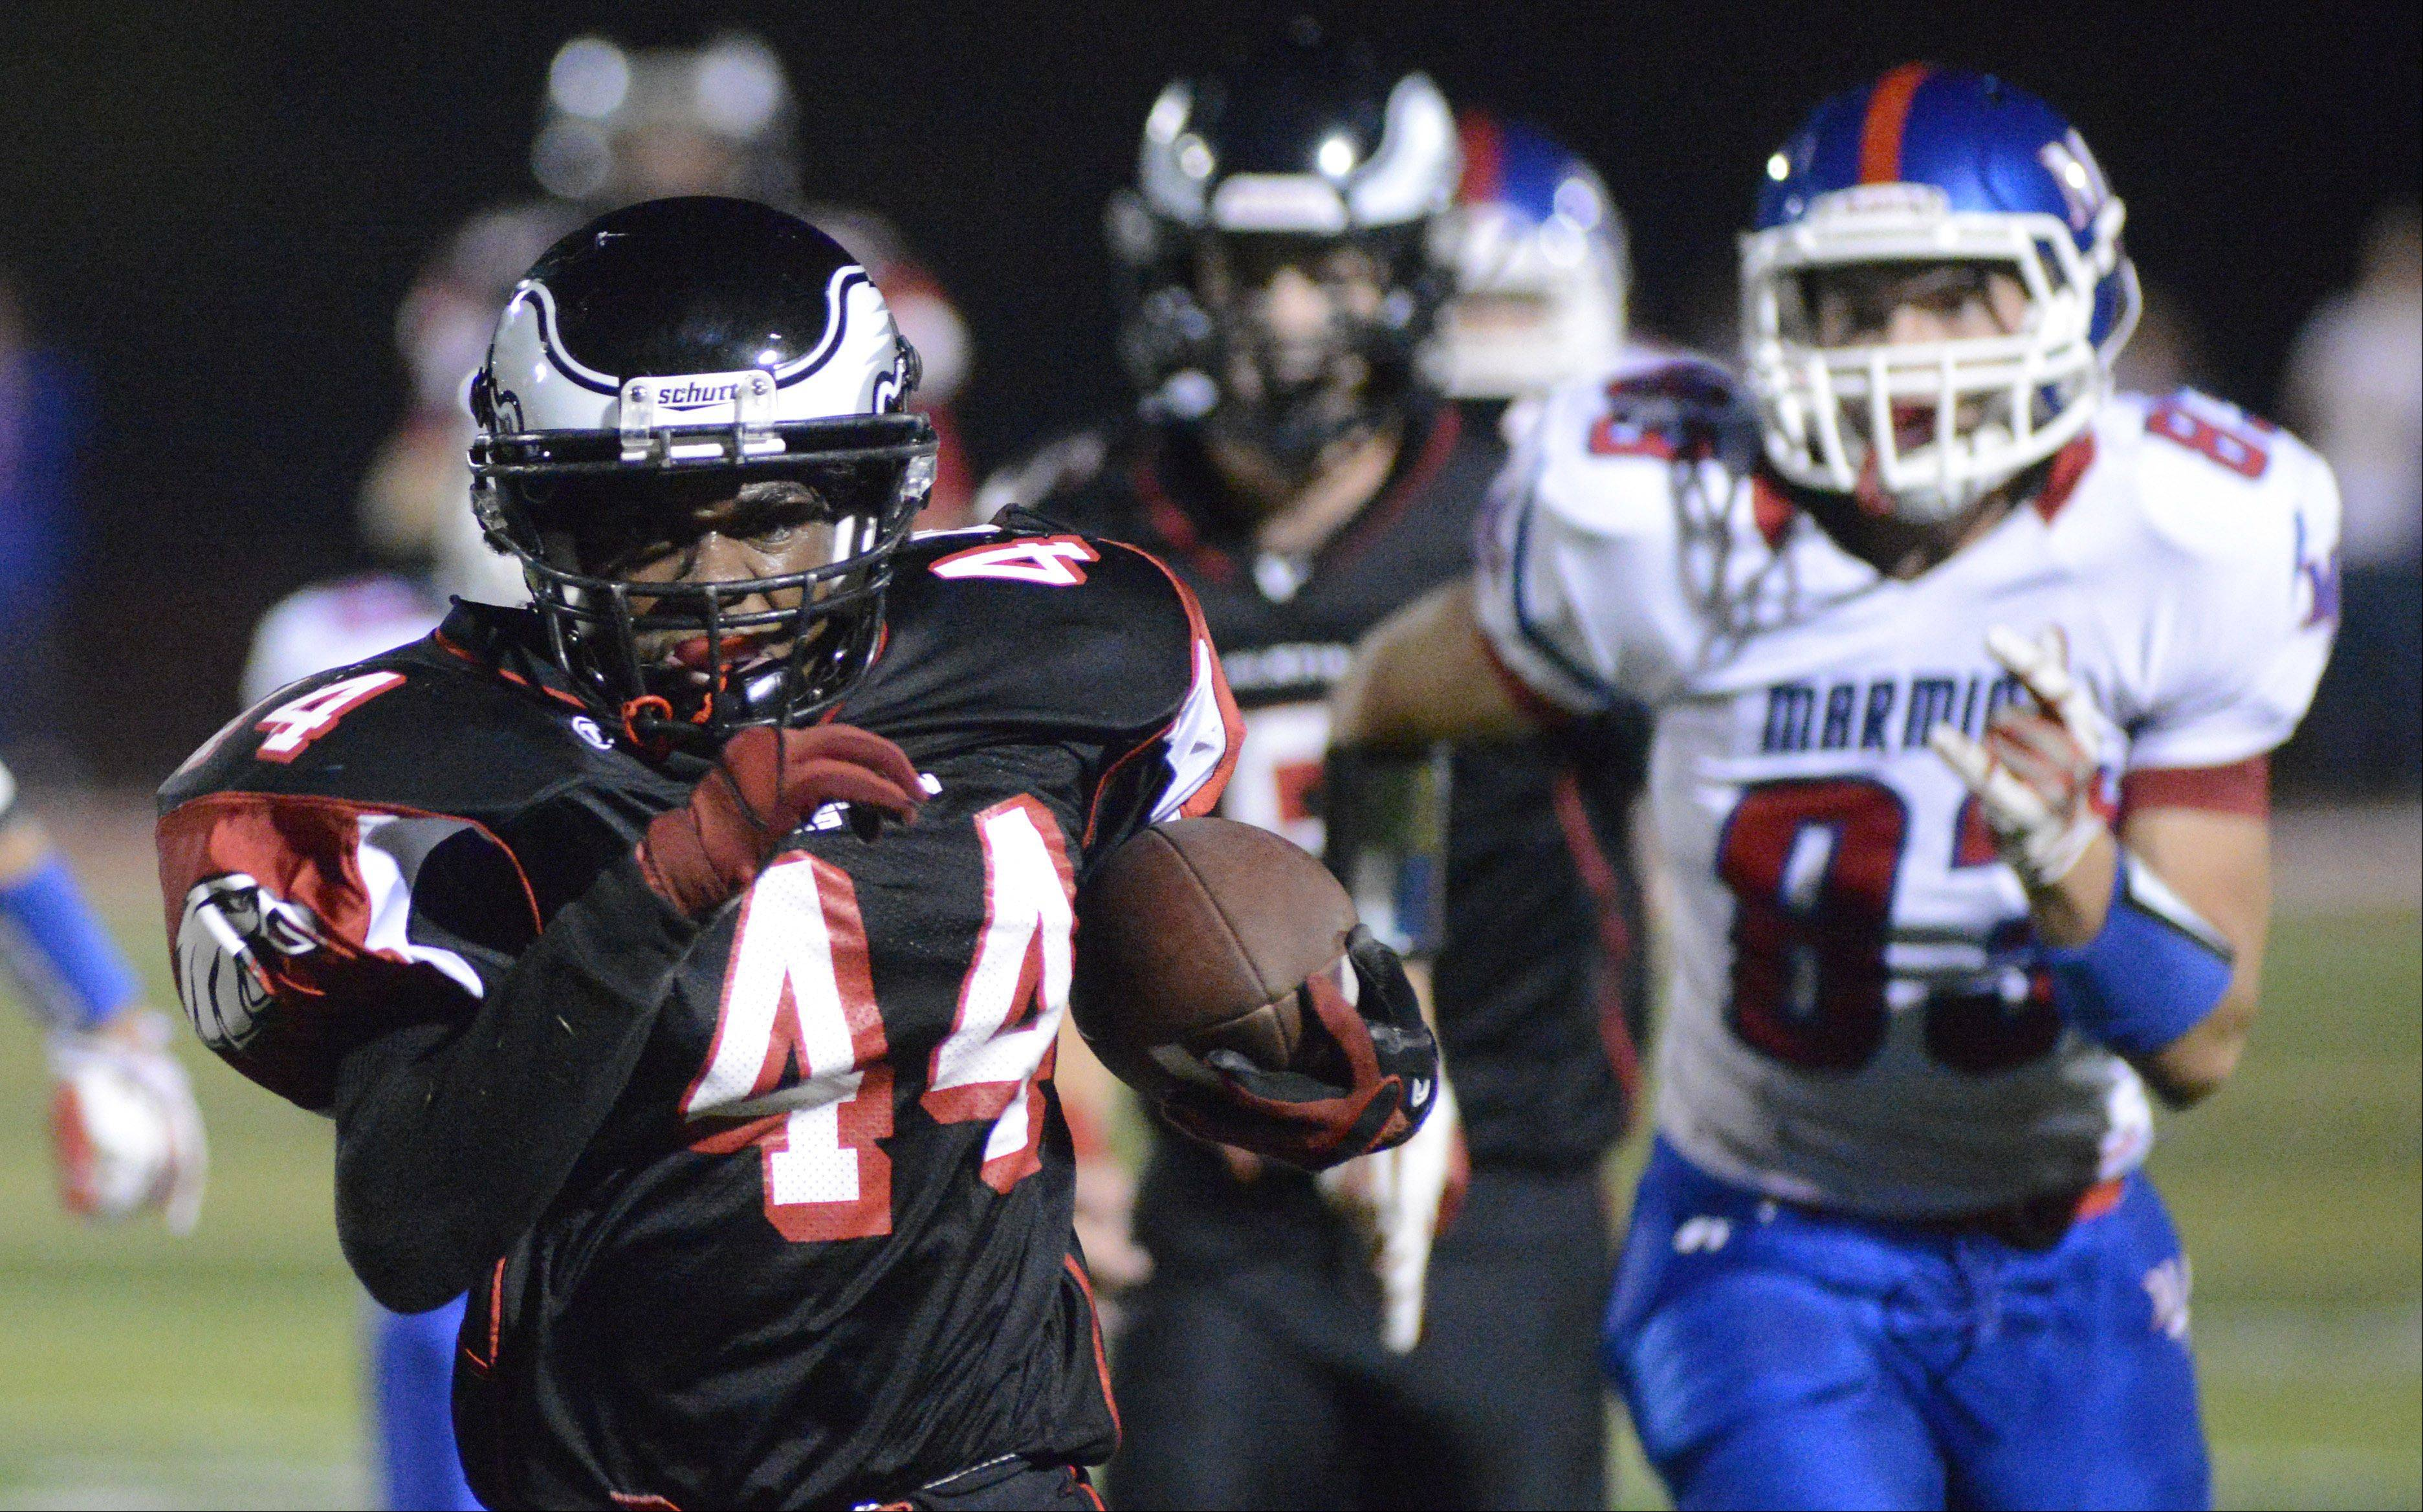 Aurora Christian's Legend Smith runs from Marmion Academy to the end zone in the second quarter on Friday, October 4.